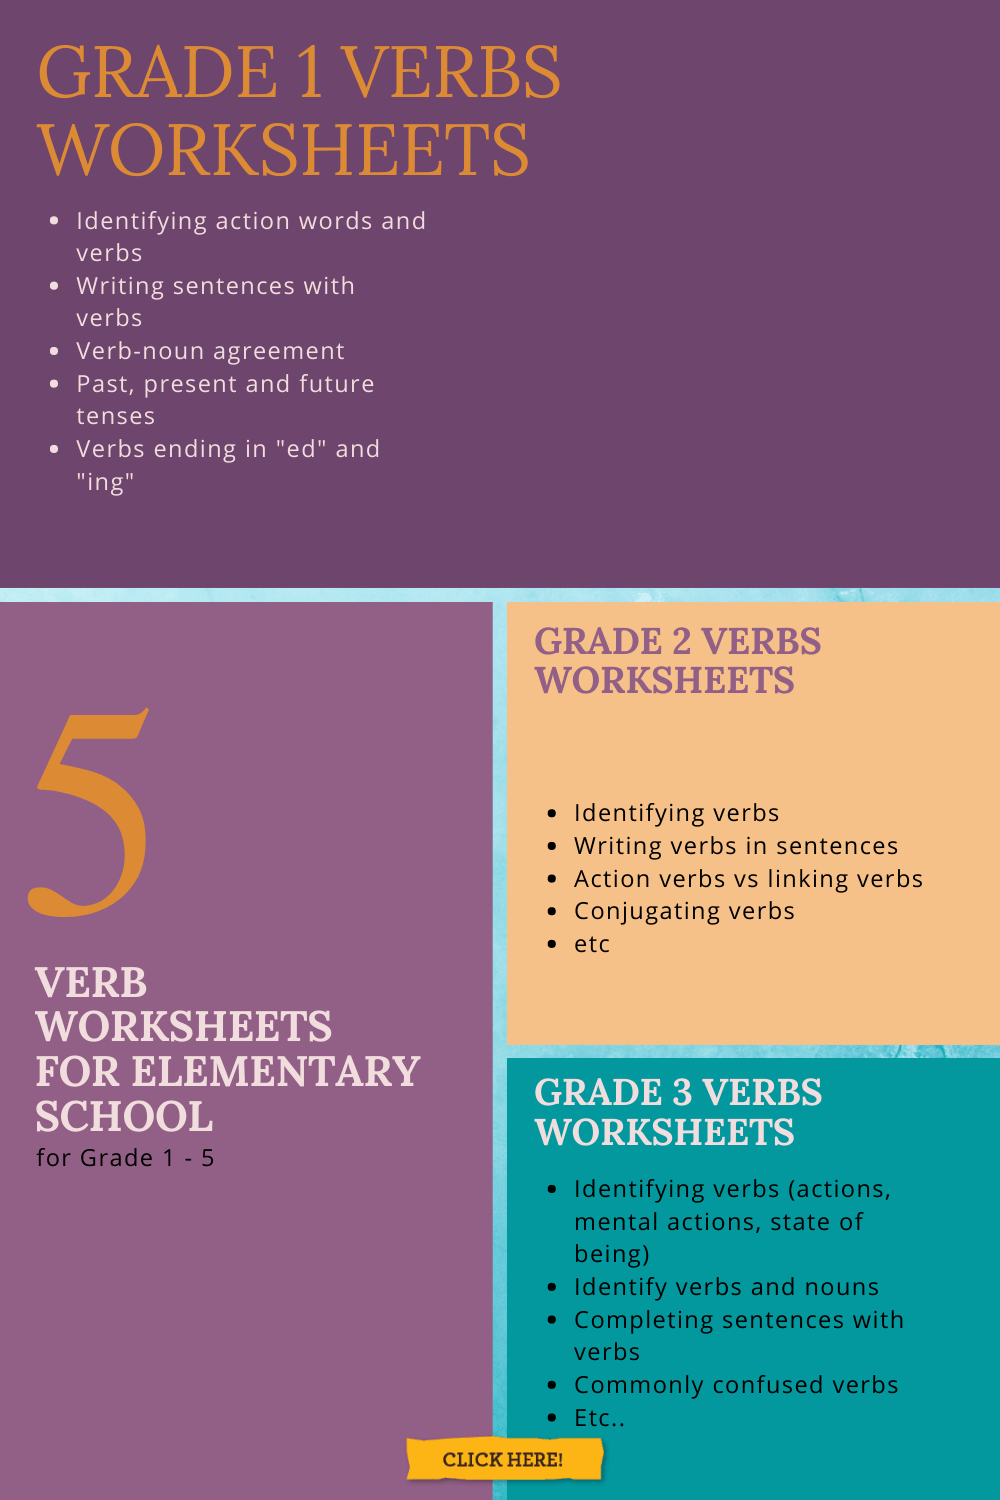 Verb Worksheets for Elementary School Printable and Free : English  Worksheets   Worksheets Free [ 1500 x 1000 Pixel ]